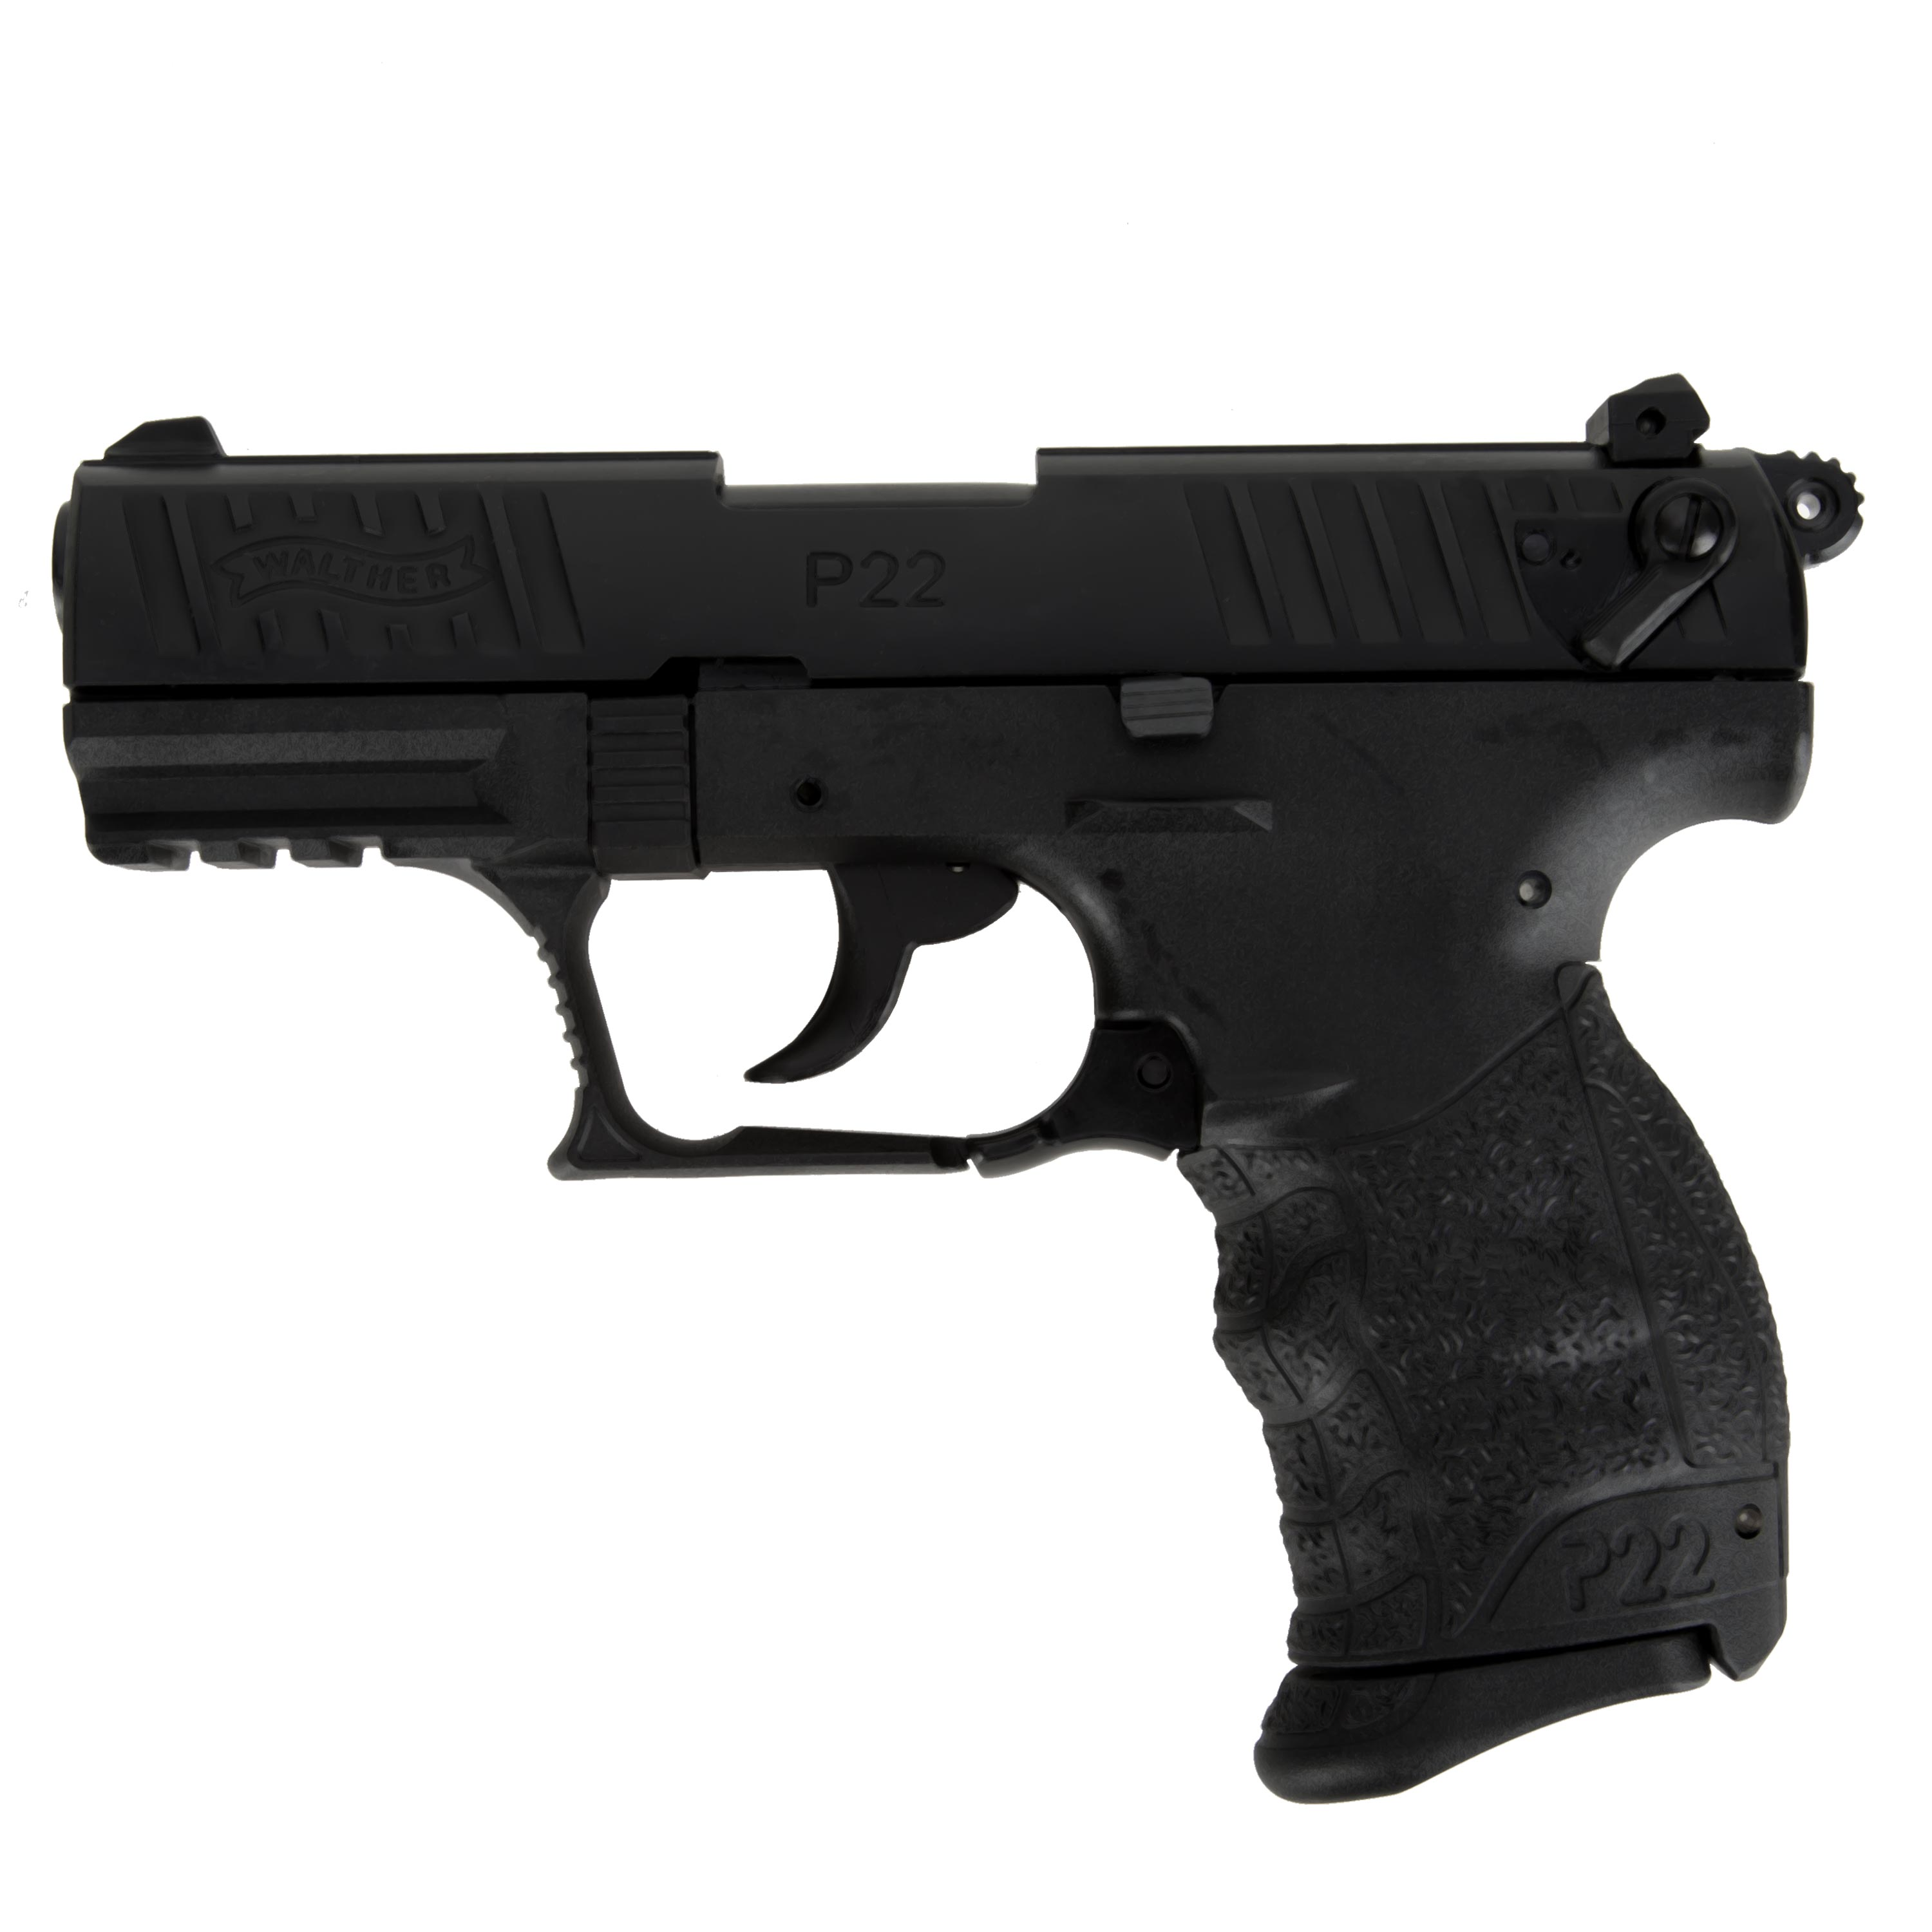 Pistol Walther P22Q